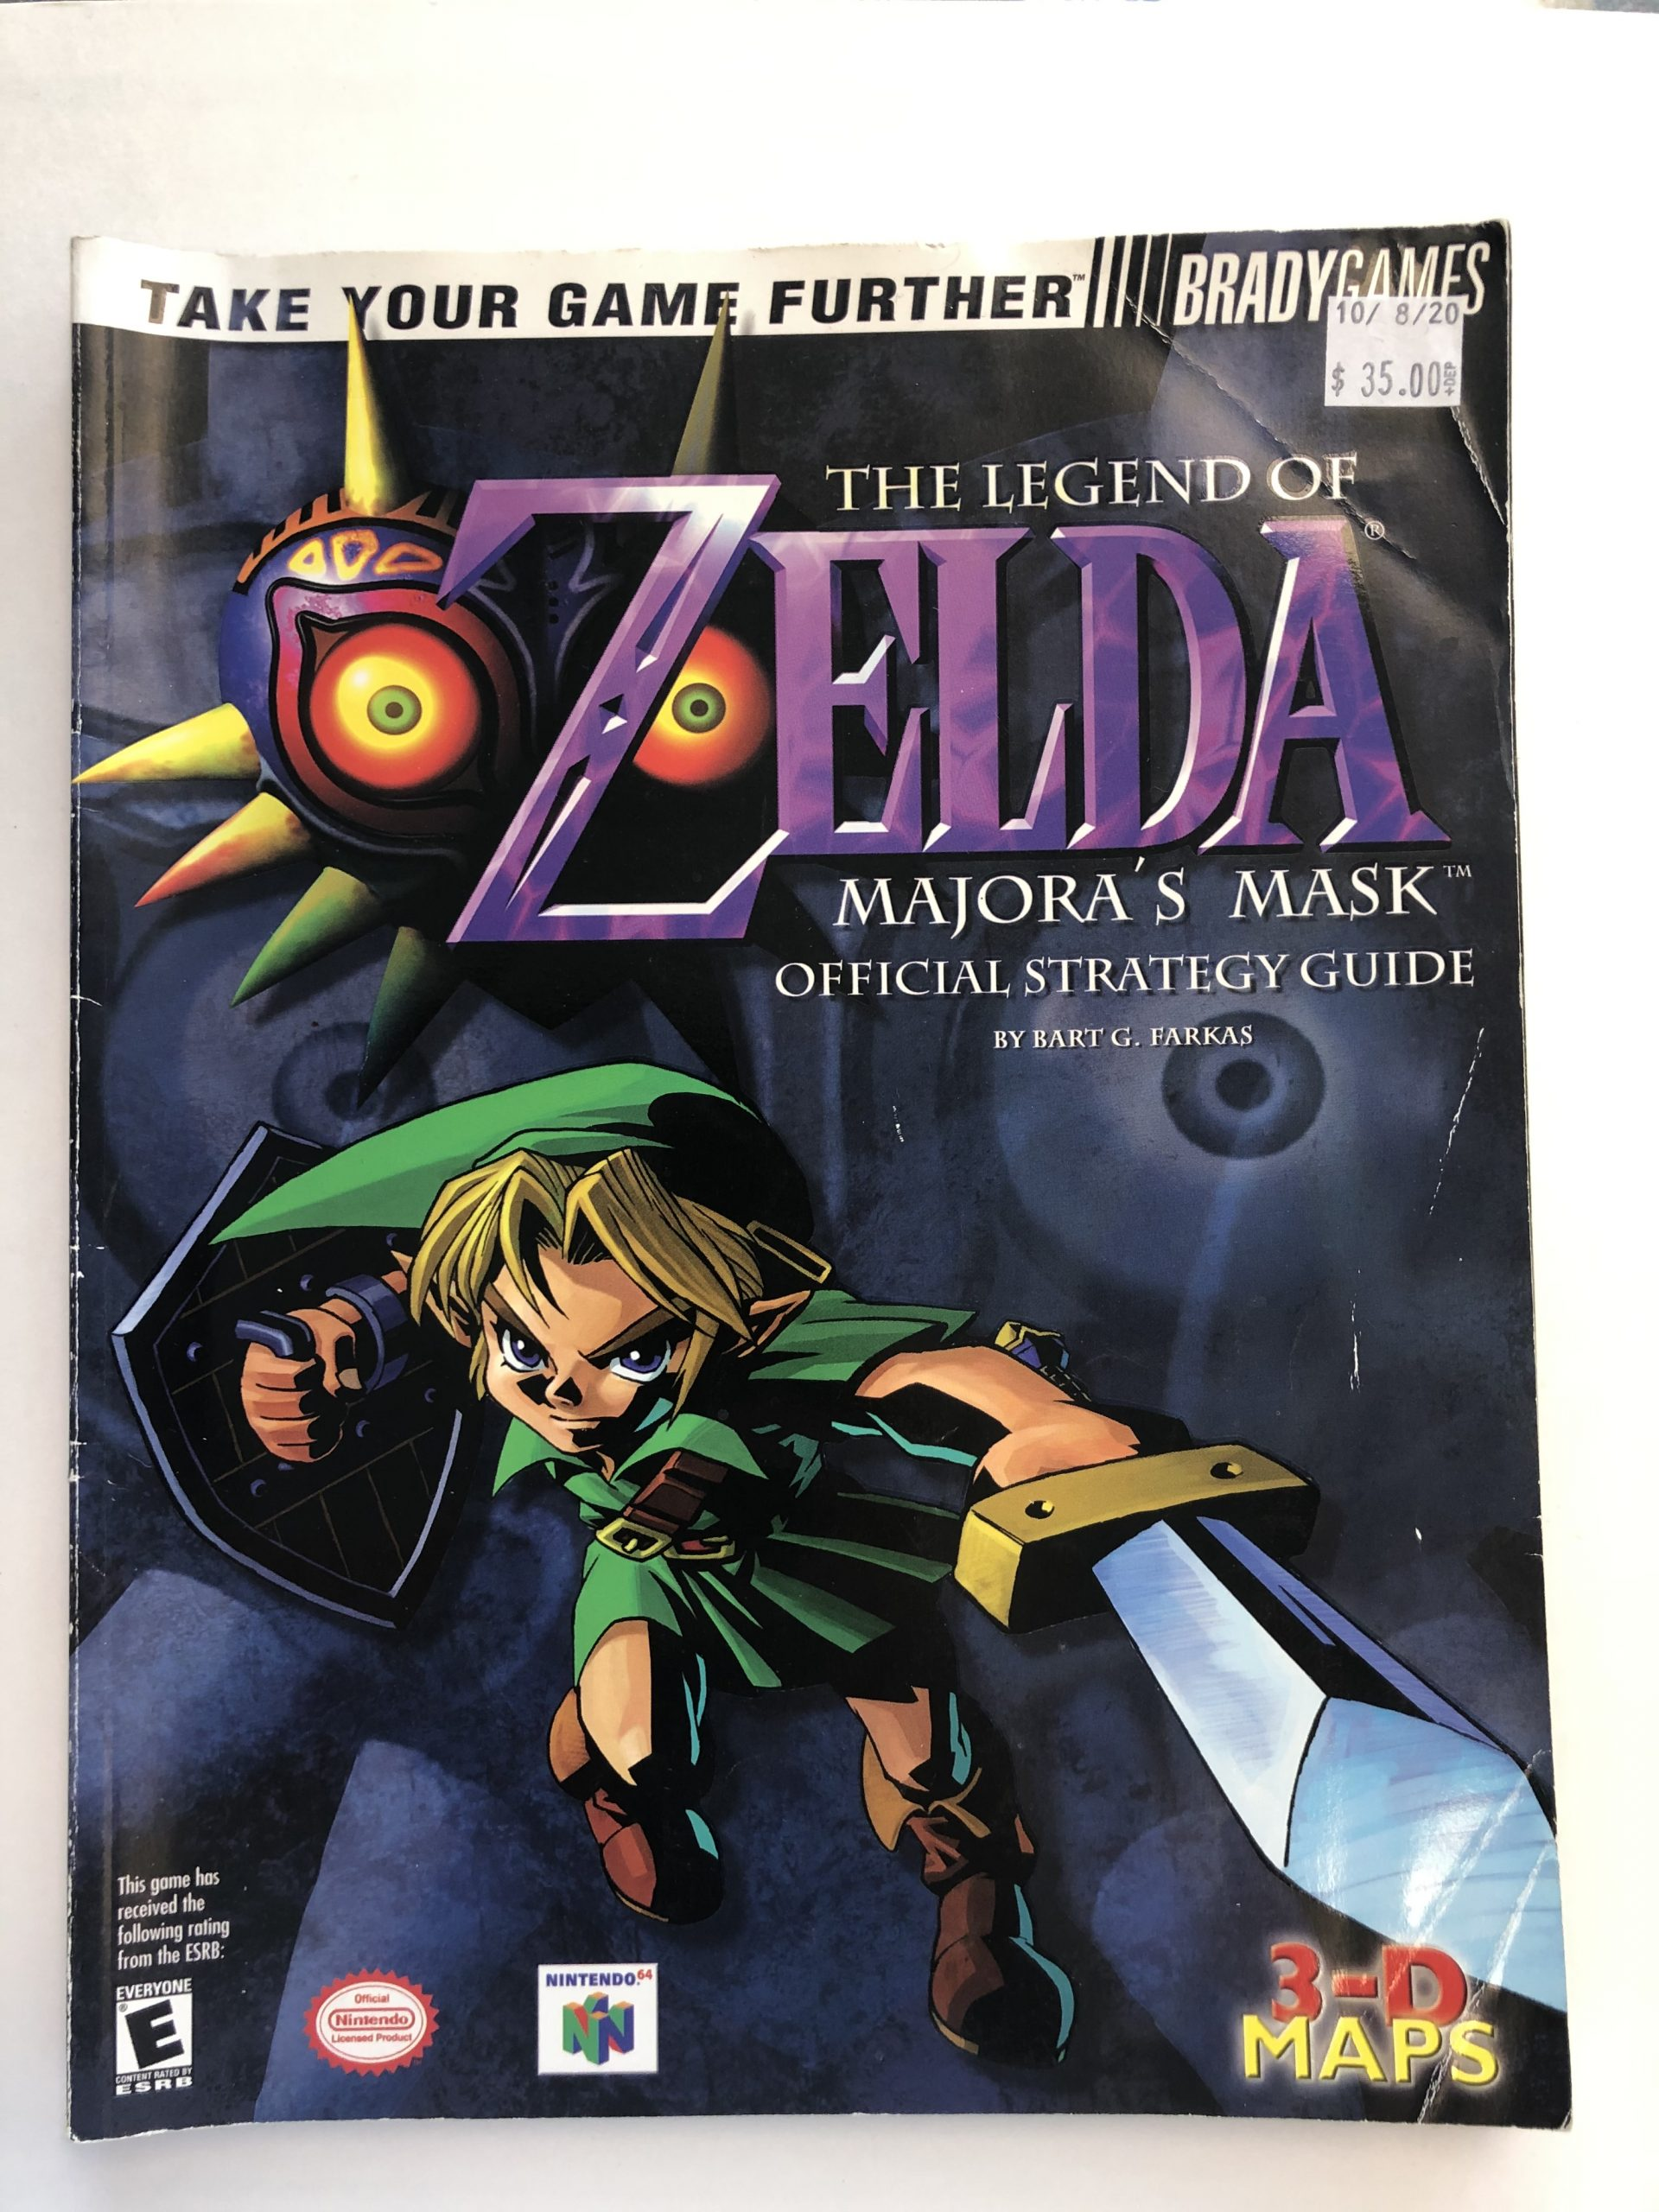 Legend Of Zelda Majora's Mask Guide Book